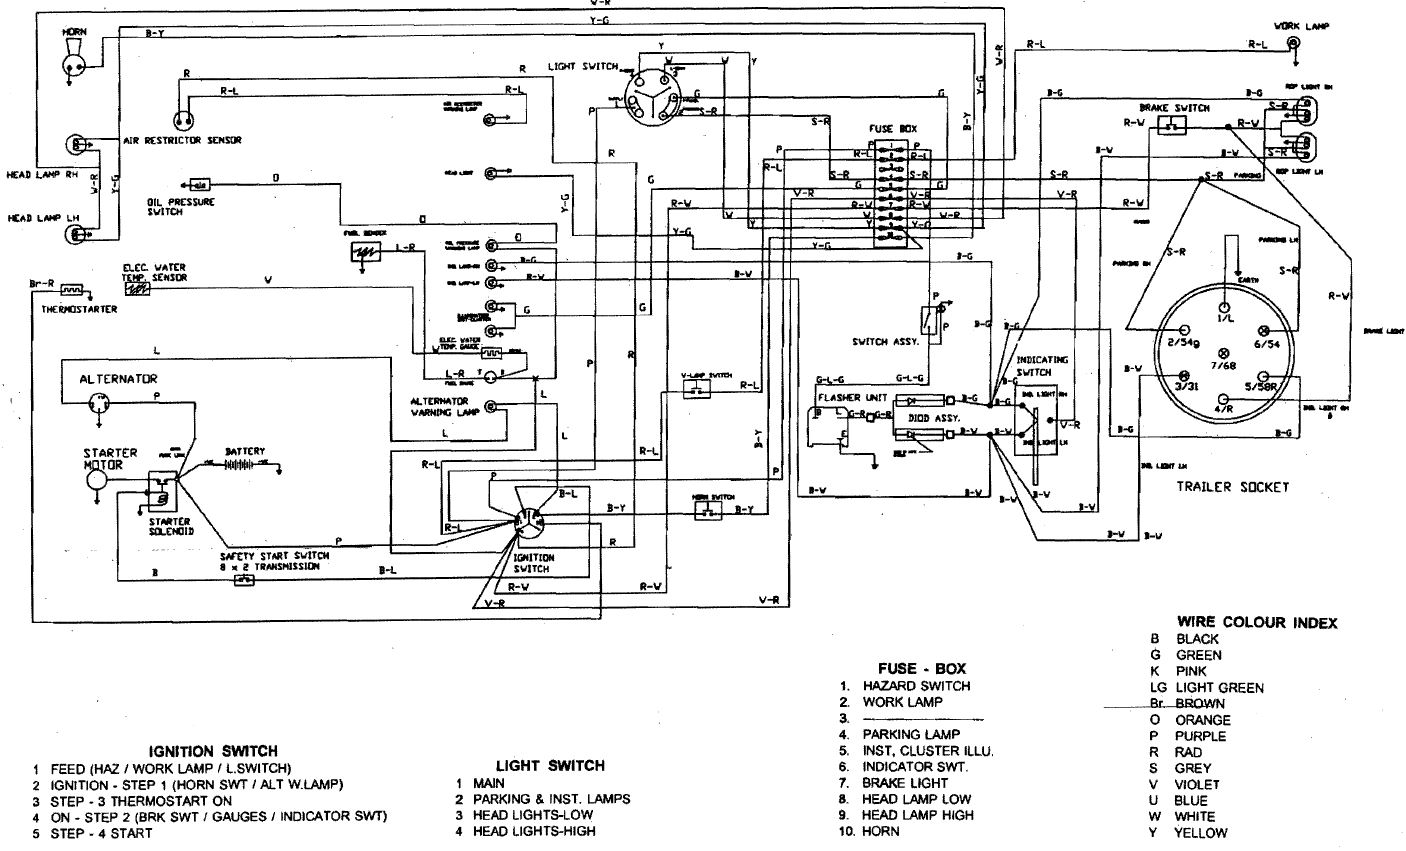 hight resolution of tractor switch wiring diagram wiring library john deere 4440 wiring diagram ignition switch wiring diagram